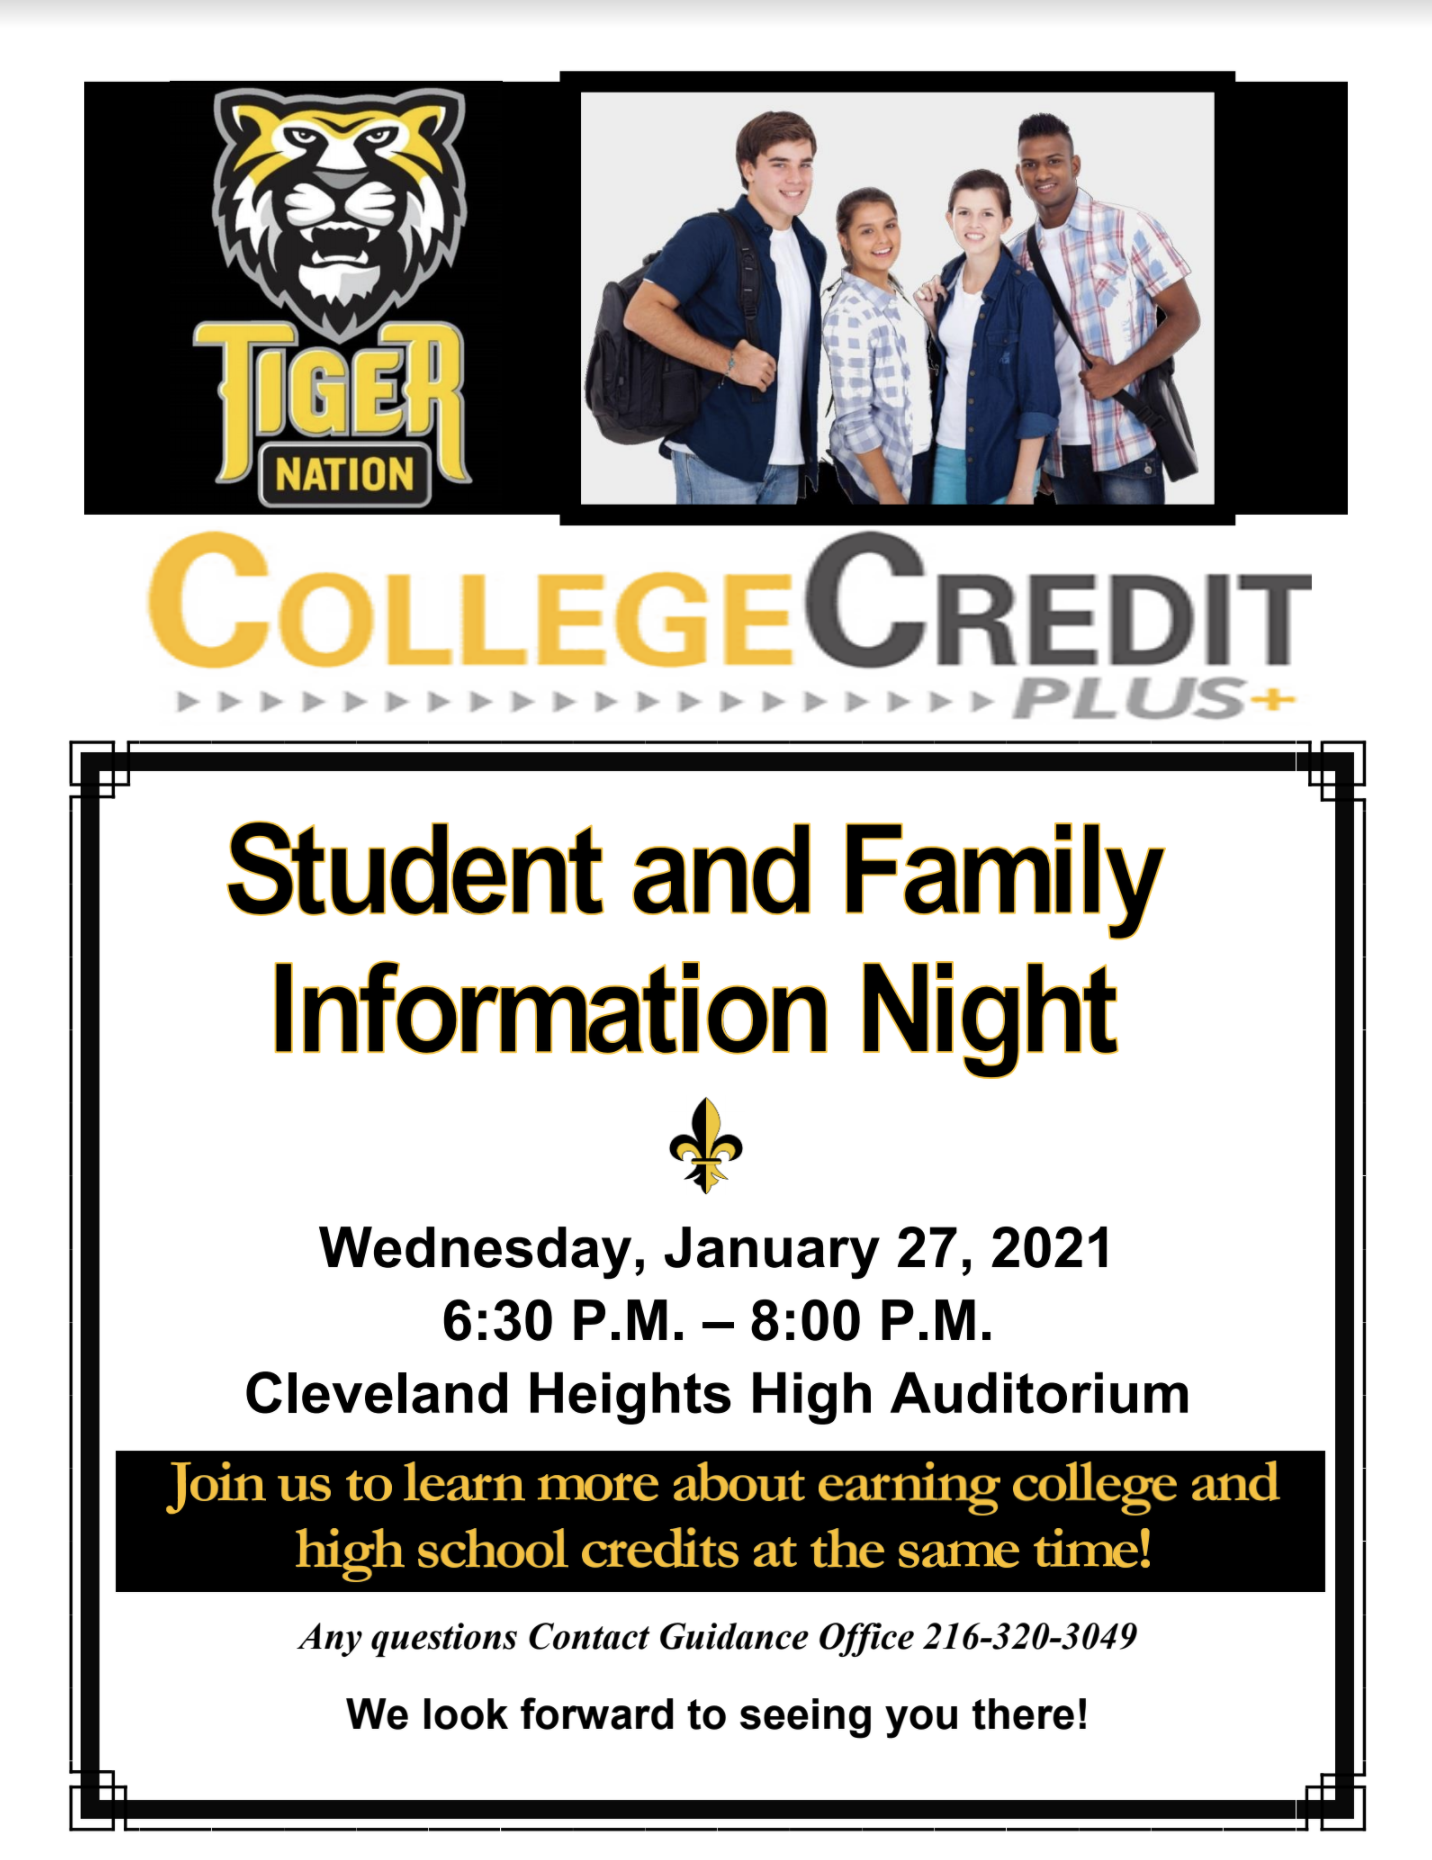 College Credit Plus Flyer 2021